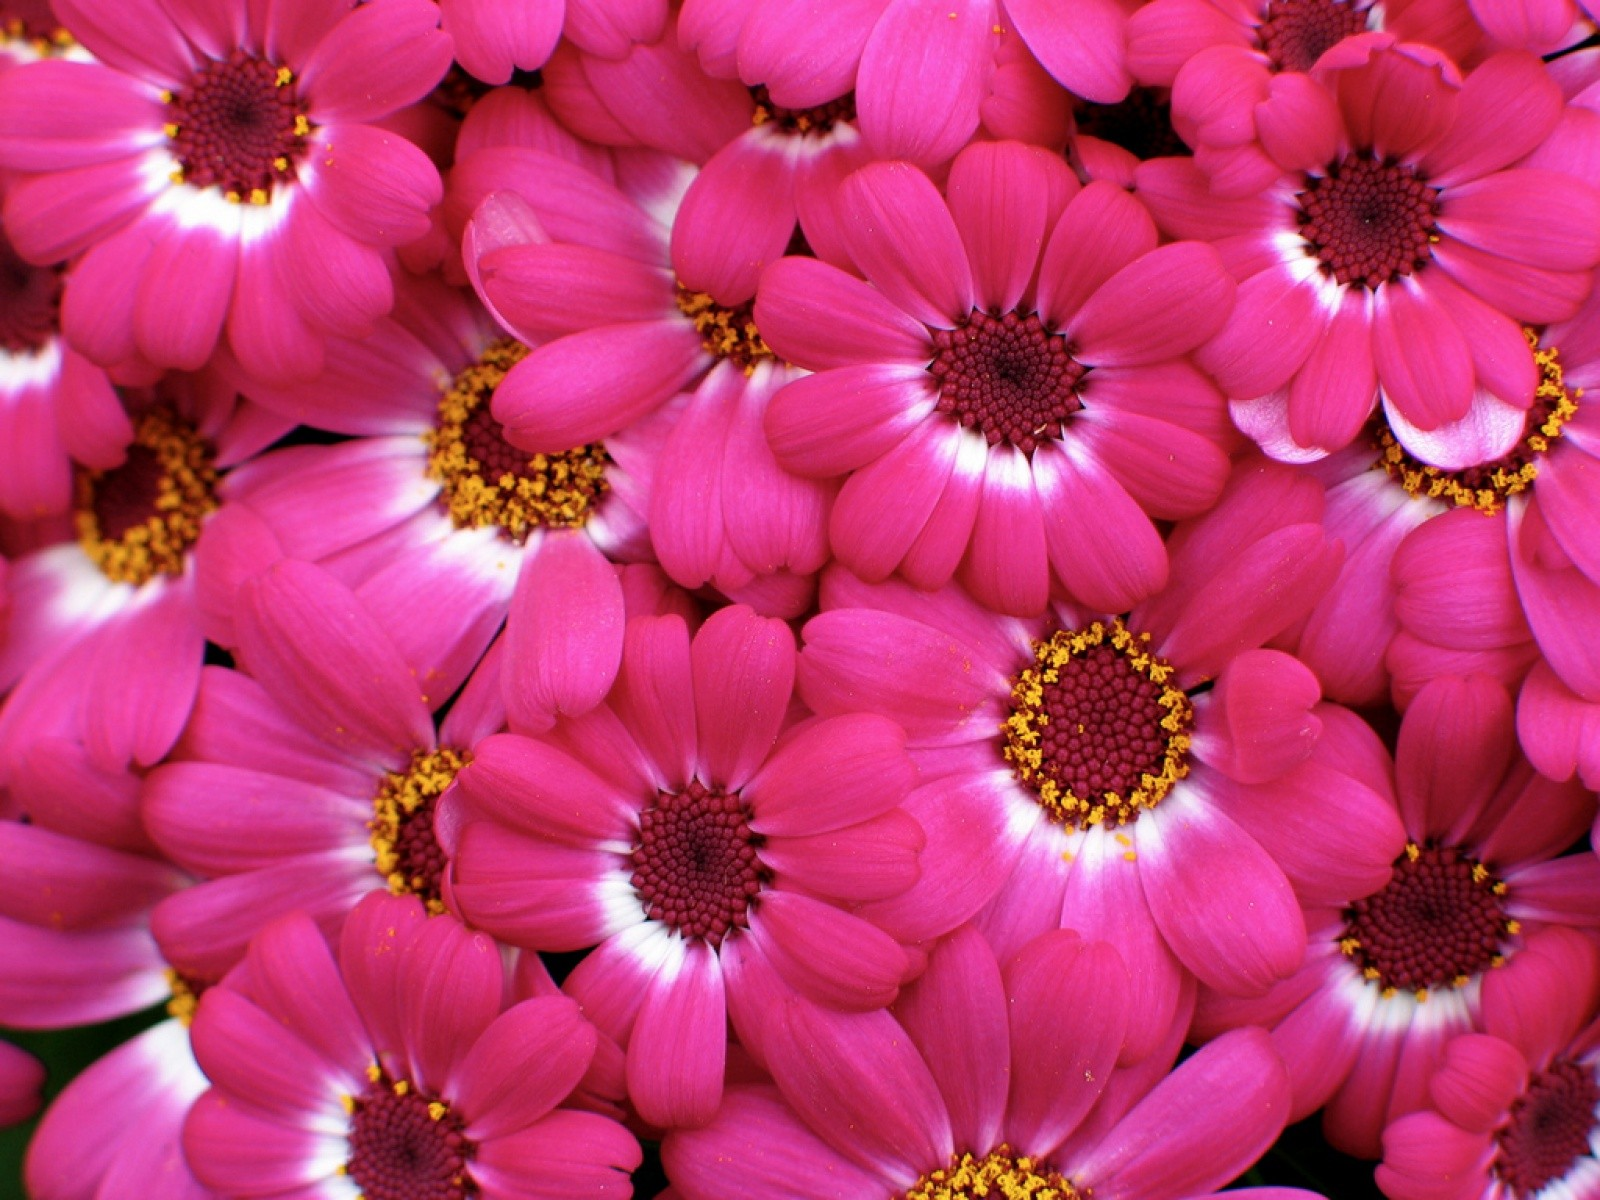 Types of pink flowers 7 widescreen wallpaper hdflowerwallpaper types of pink flowers hd wallpaper mightylinksfo